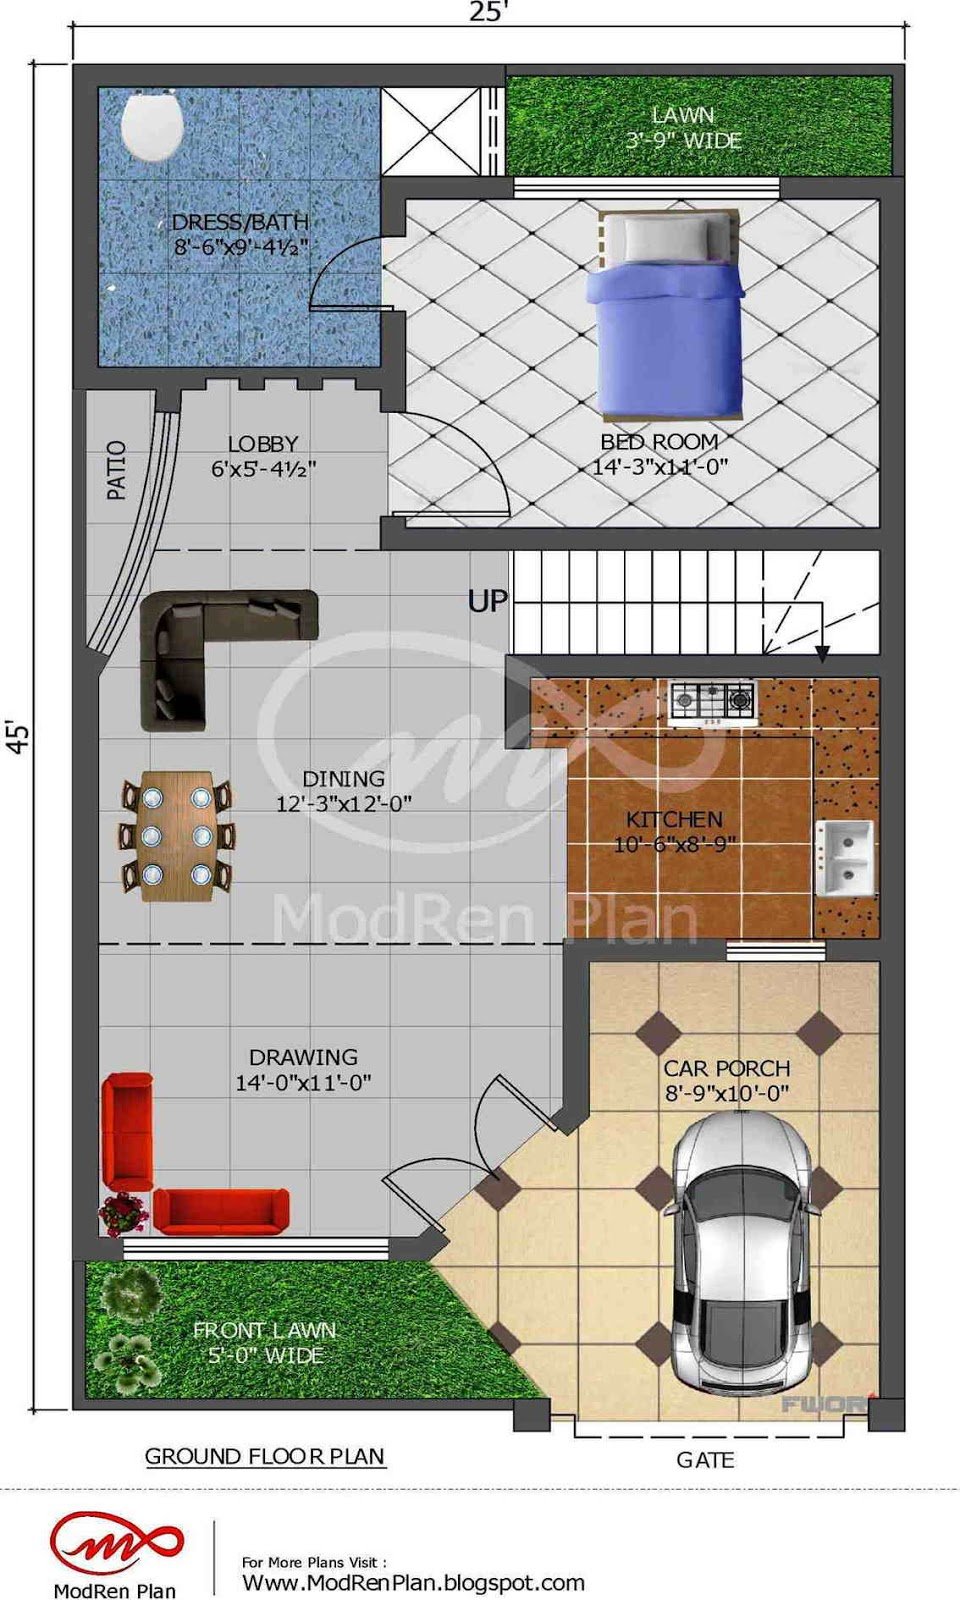 5 marla house plan 1200 sq ft 25x45 feetwww modrenplan blogspot com